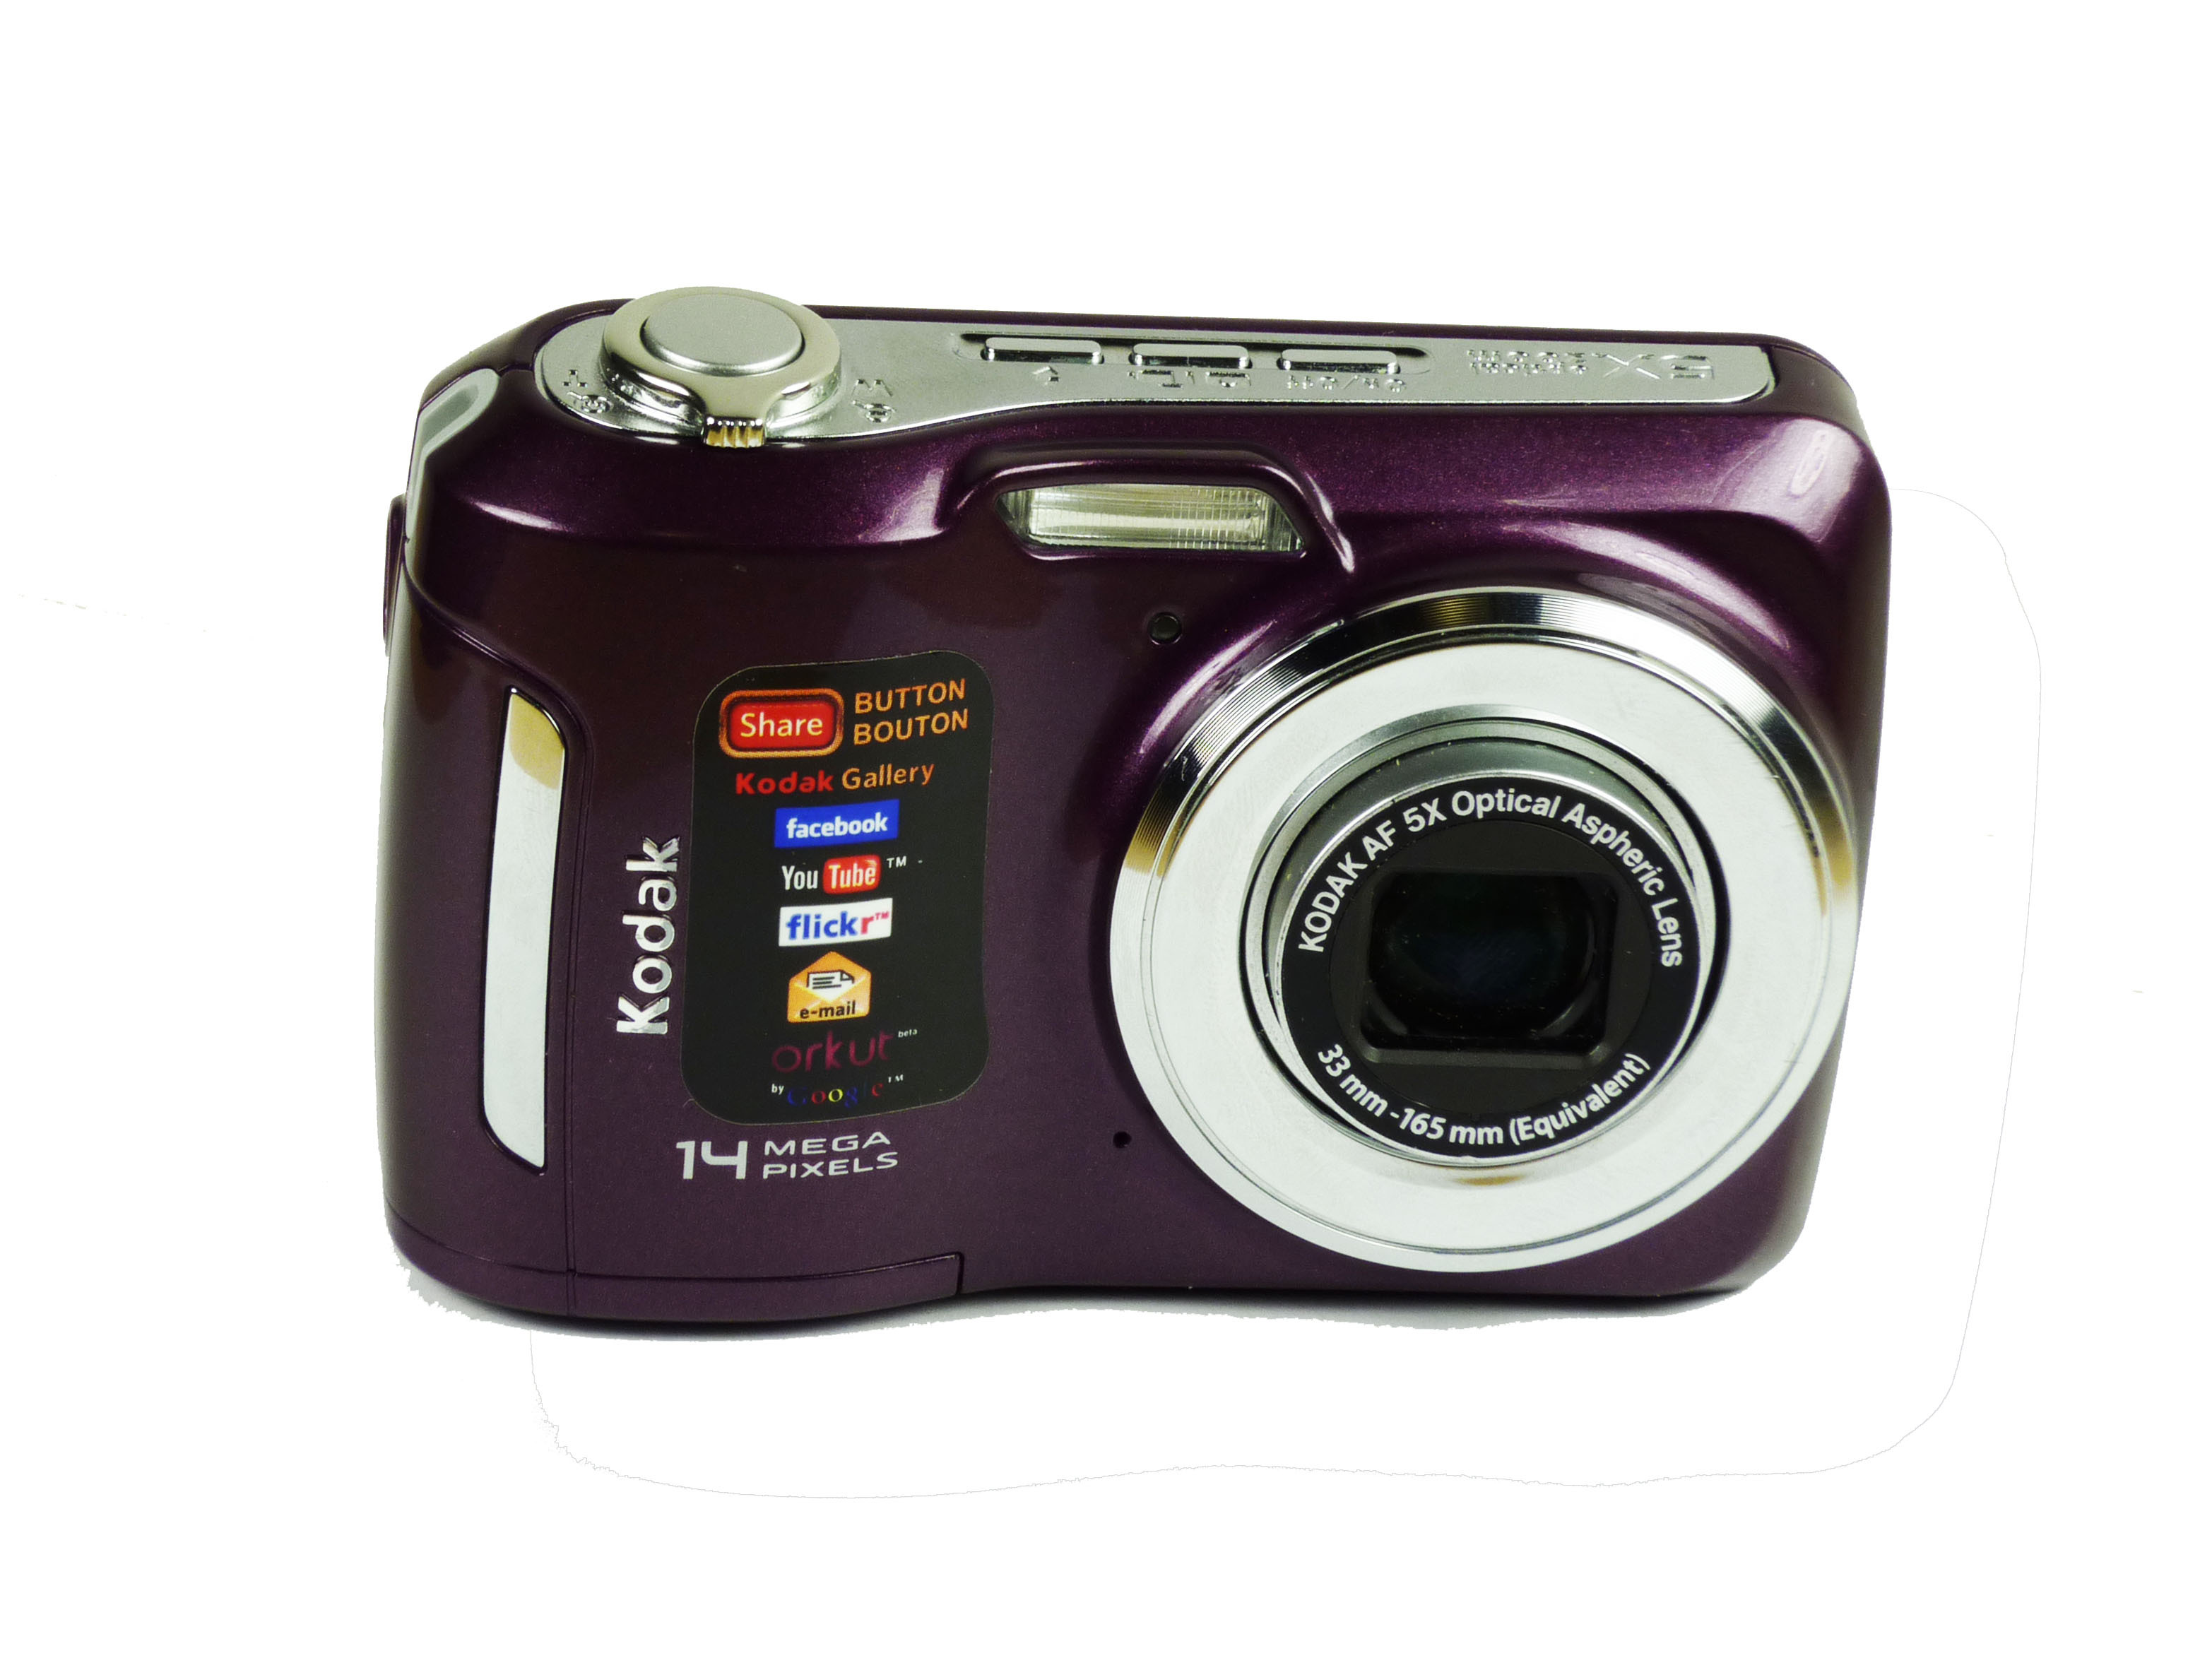 Kodak easyshare c195 14mp digital camera with 5x optical zoom, kodak smart capture  one-button upload!